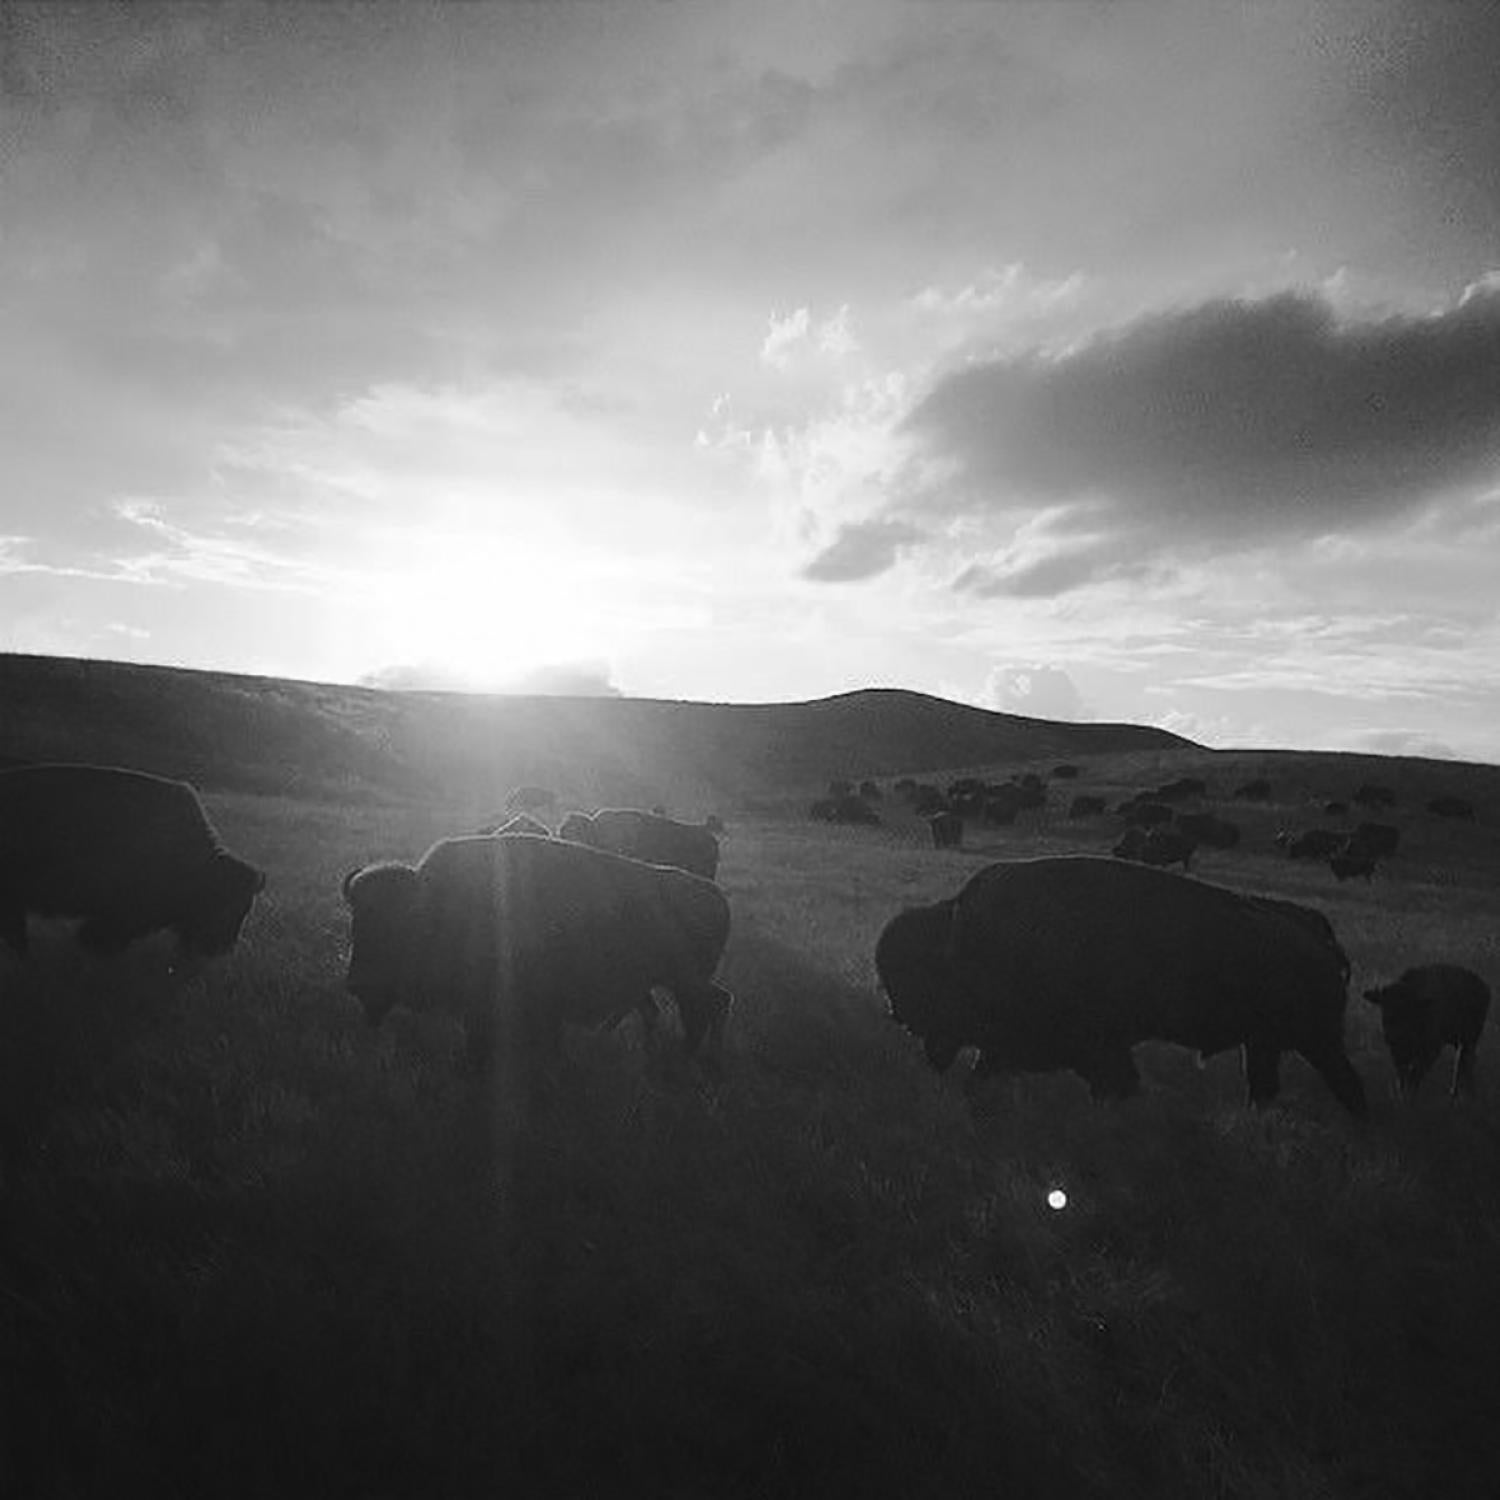 Bison walking up a hill